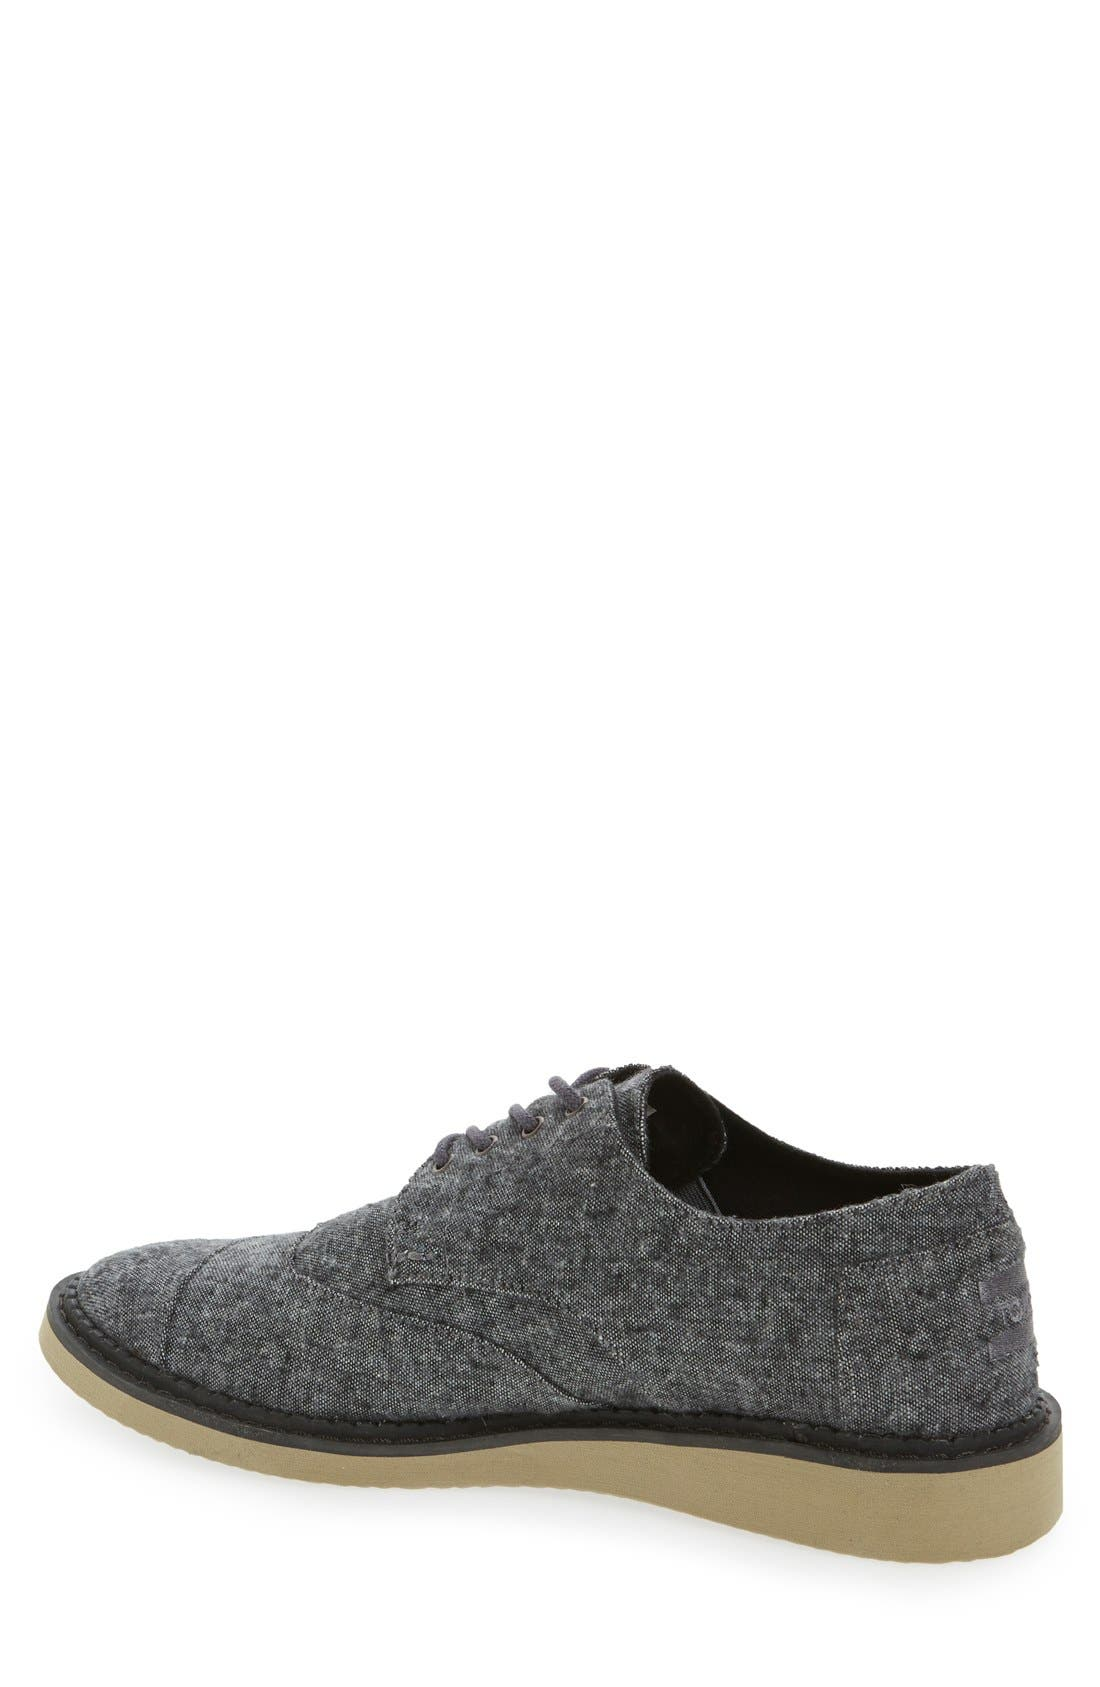 'Classic Brogue' Cotton Twill Derby,                             Alternate thumbnail 36, color,